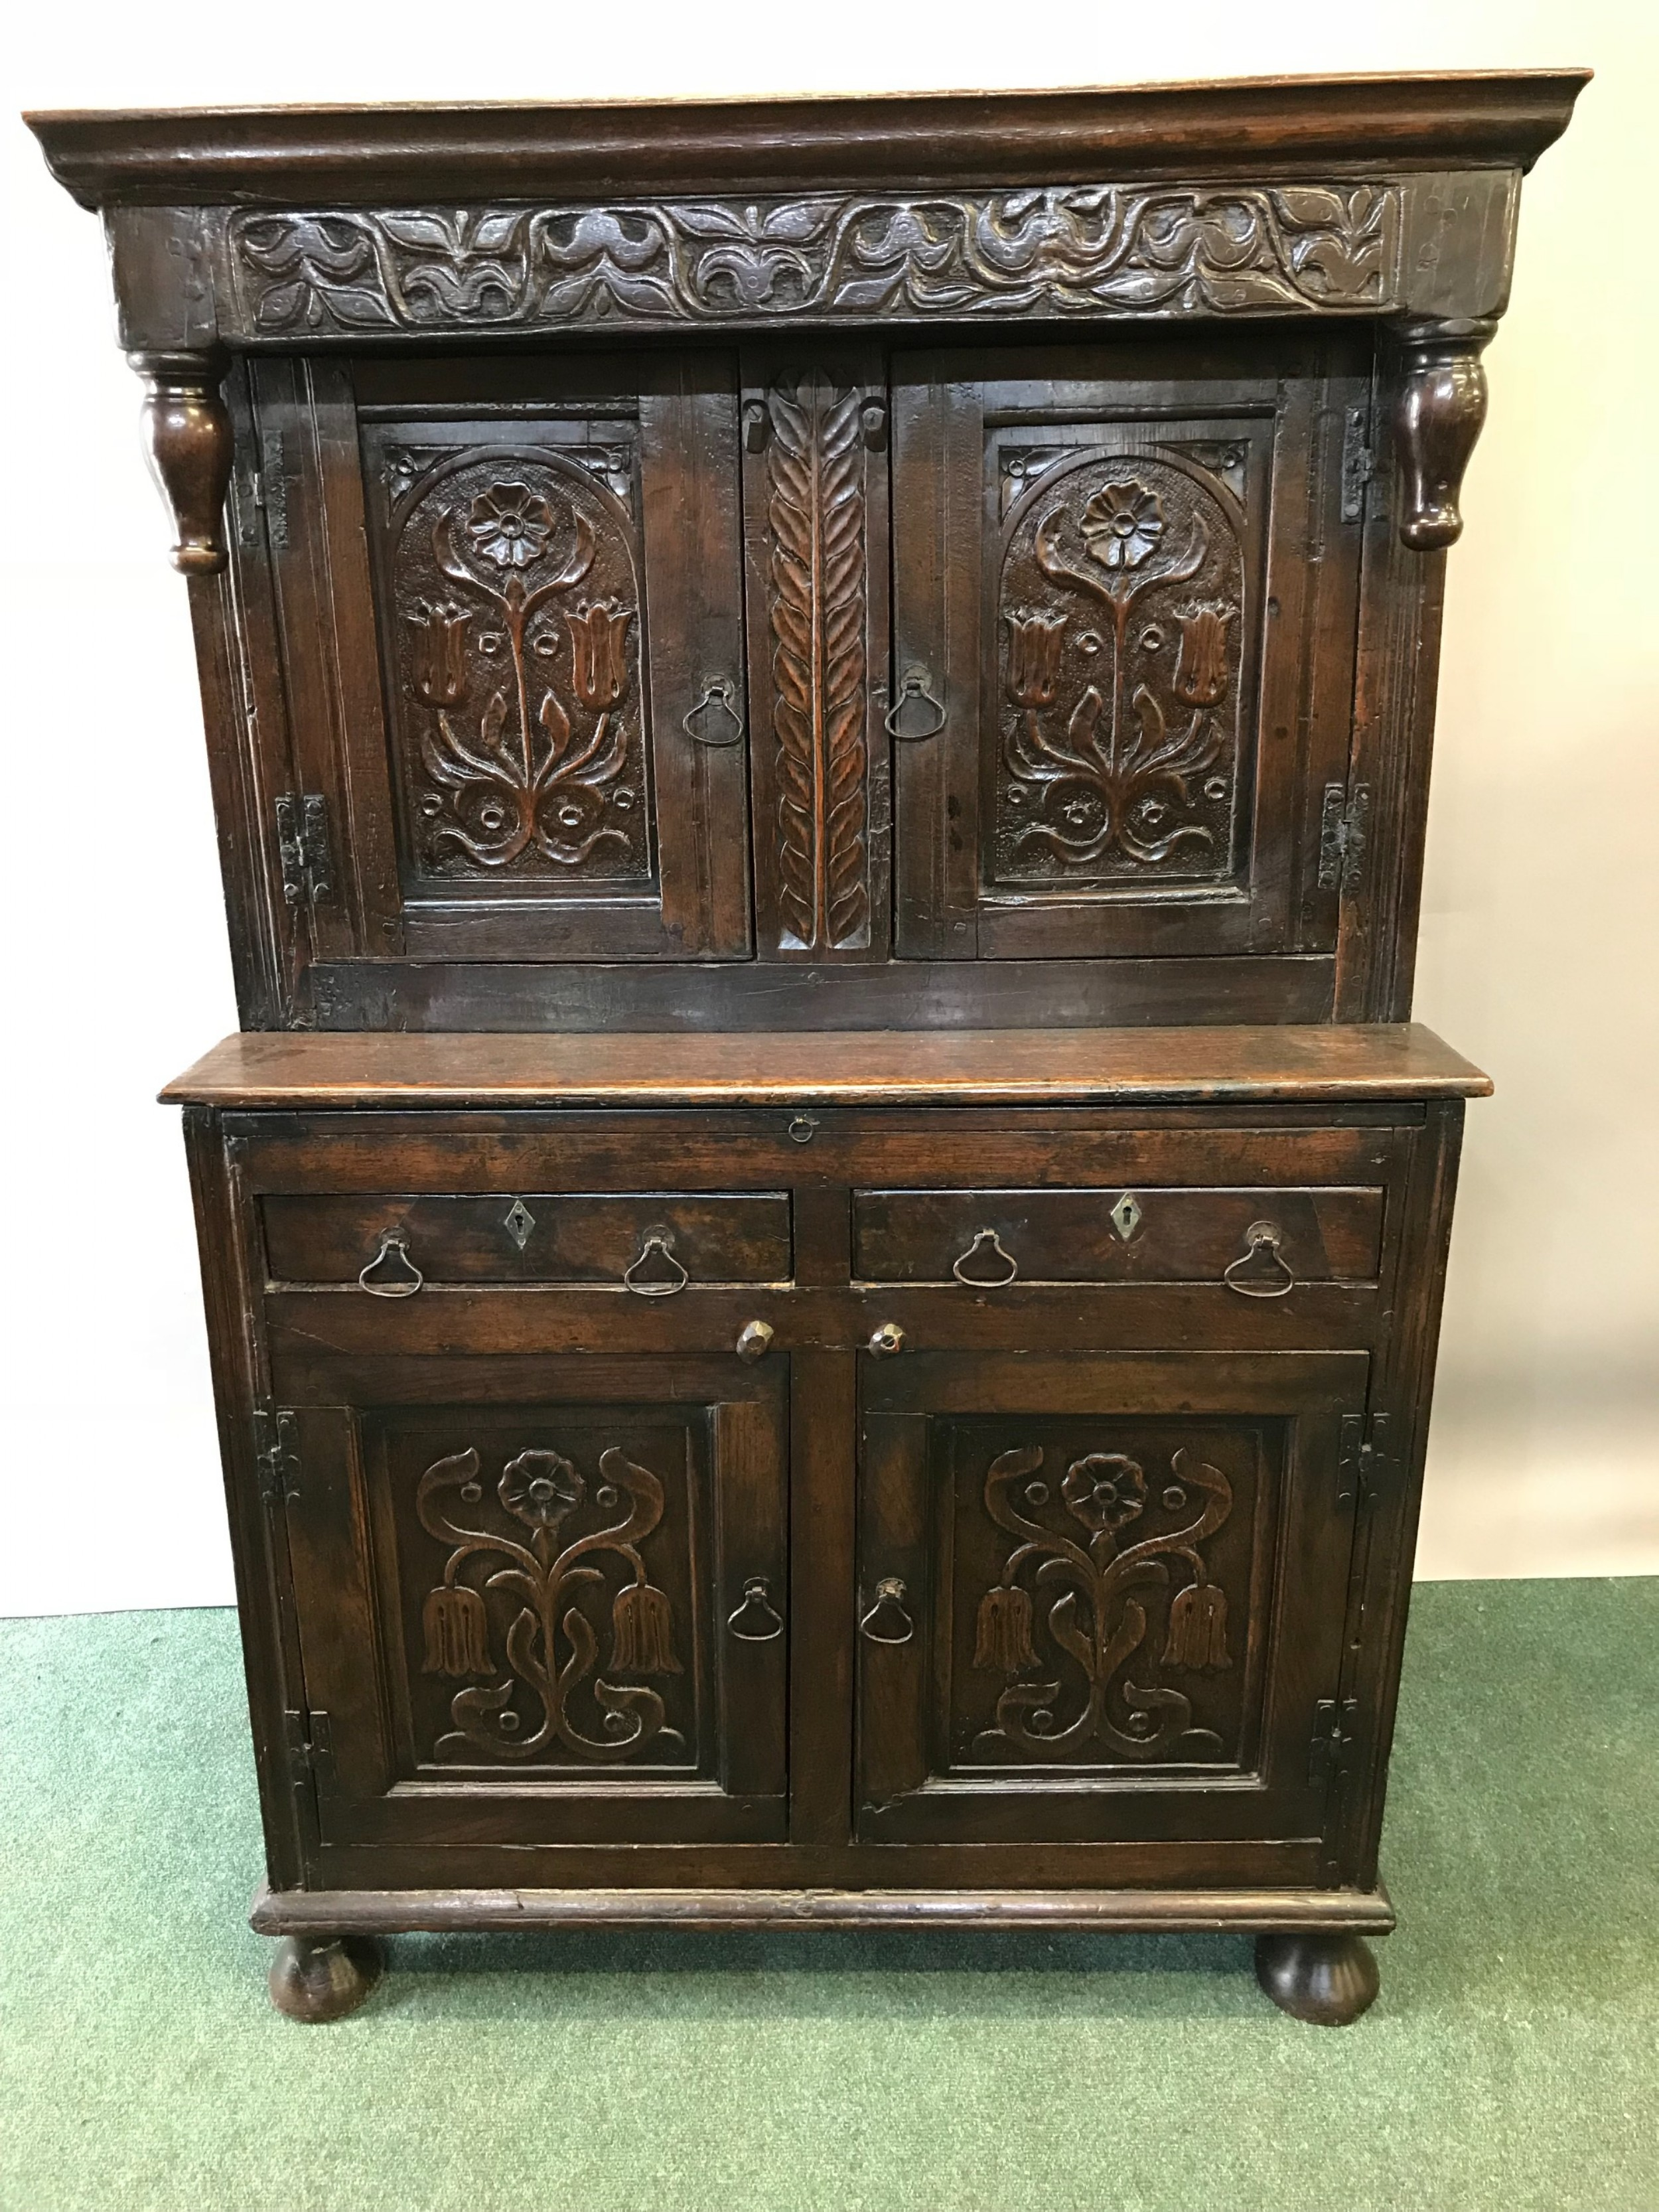 a small 17th century carved oak hall cupboard